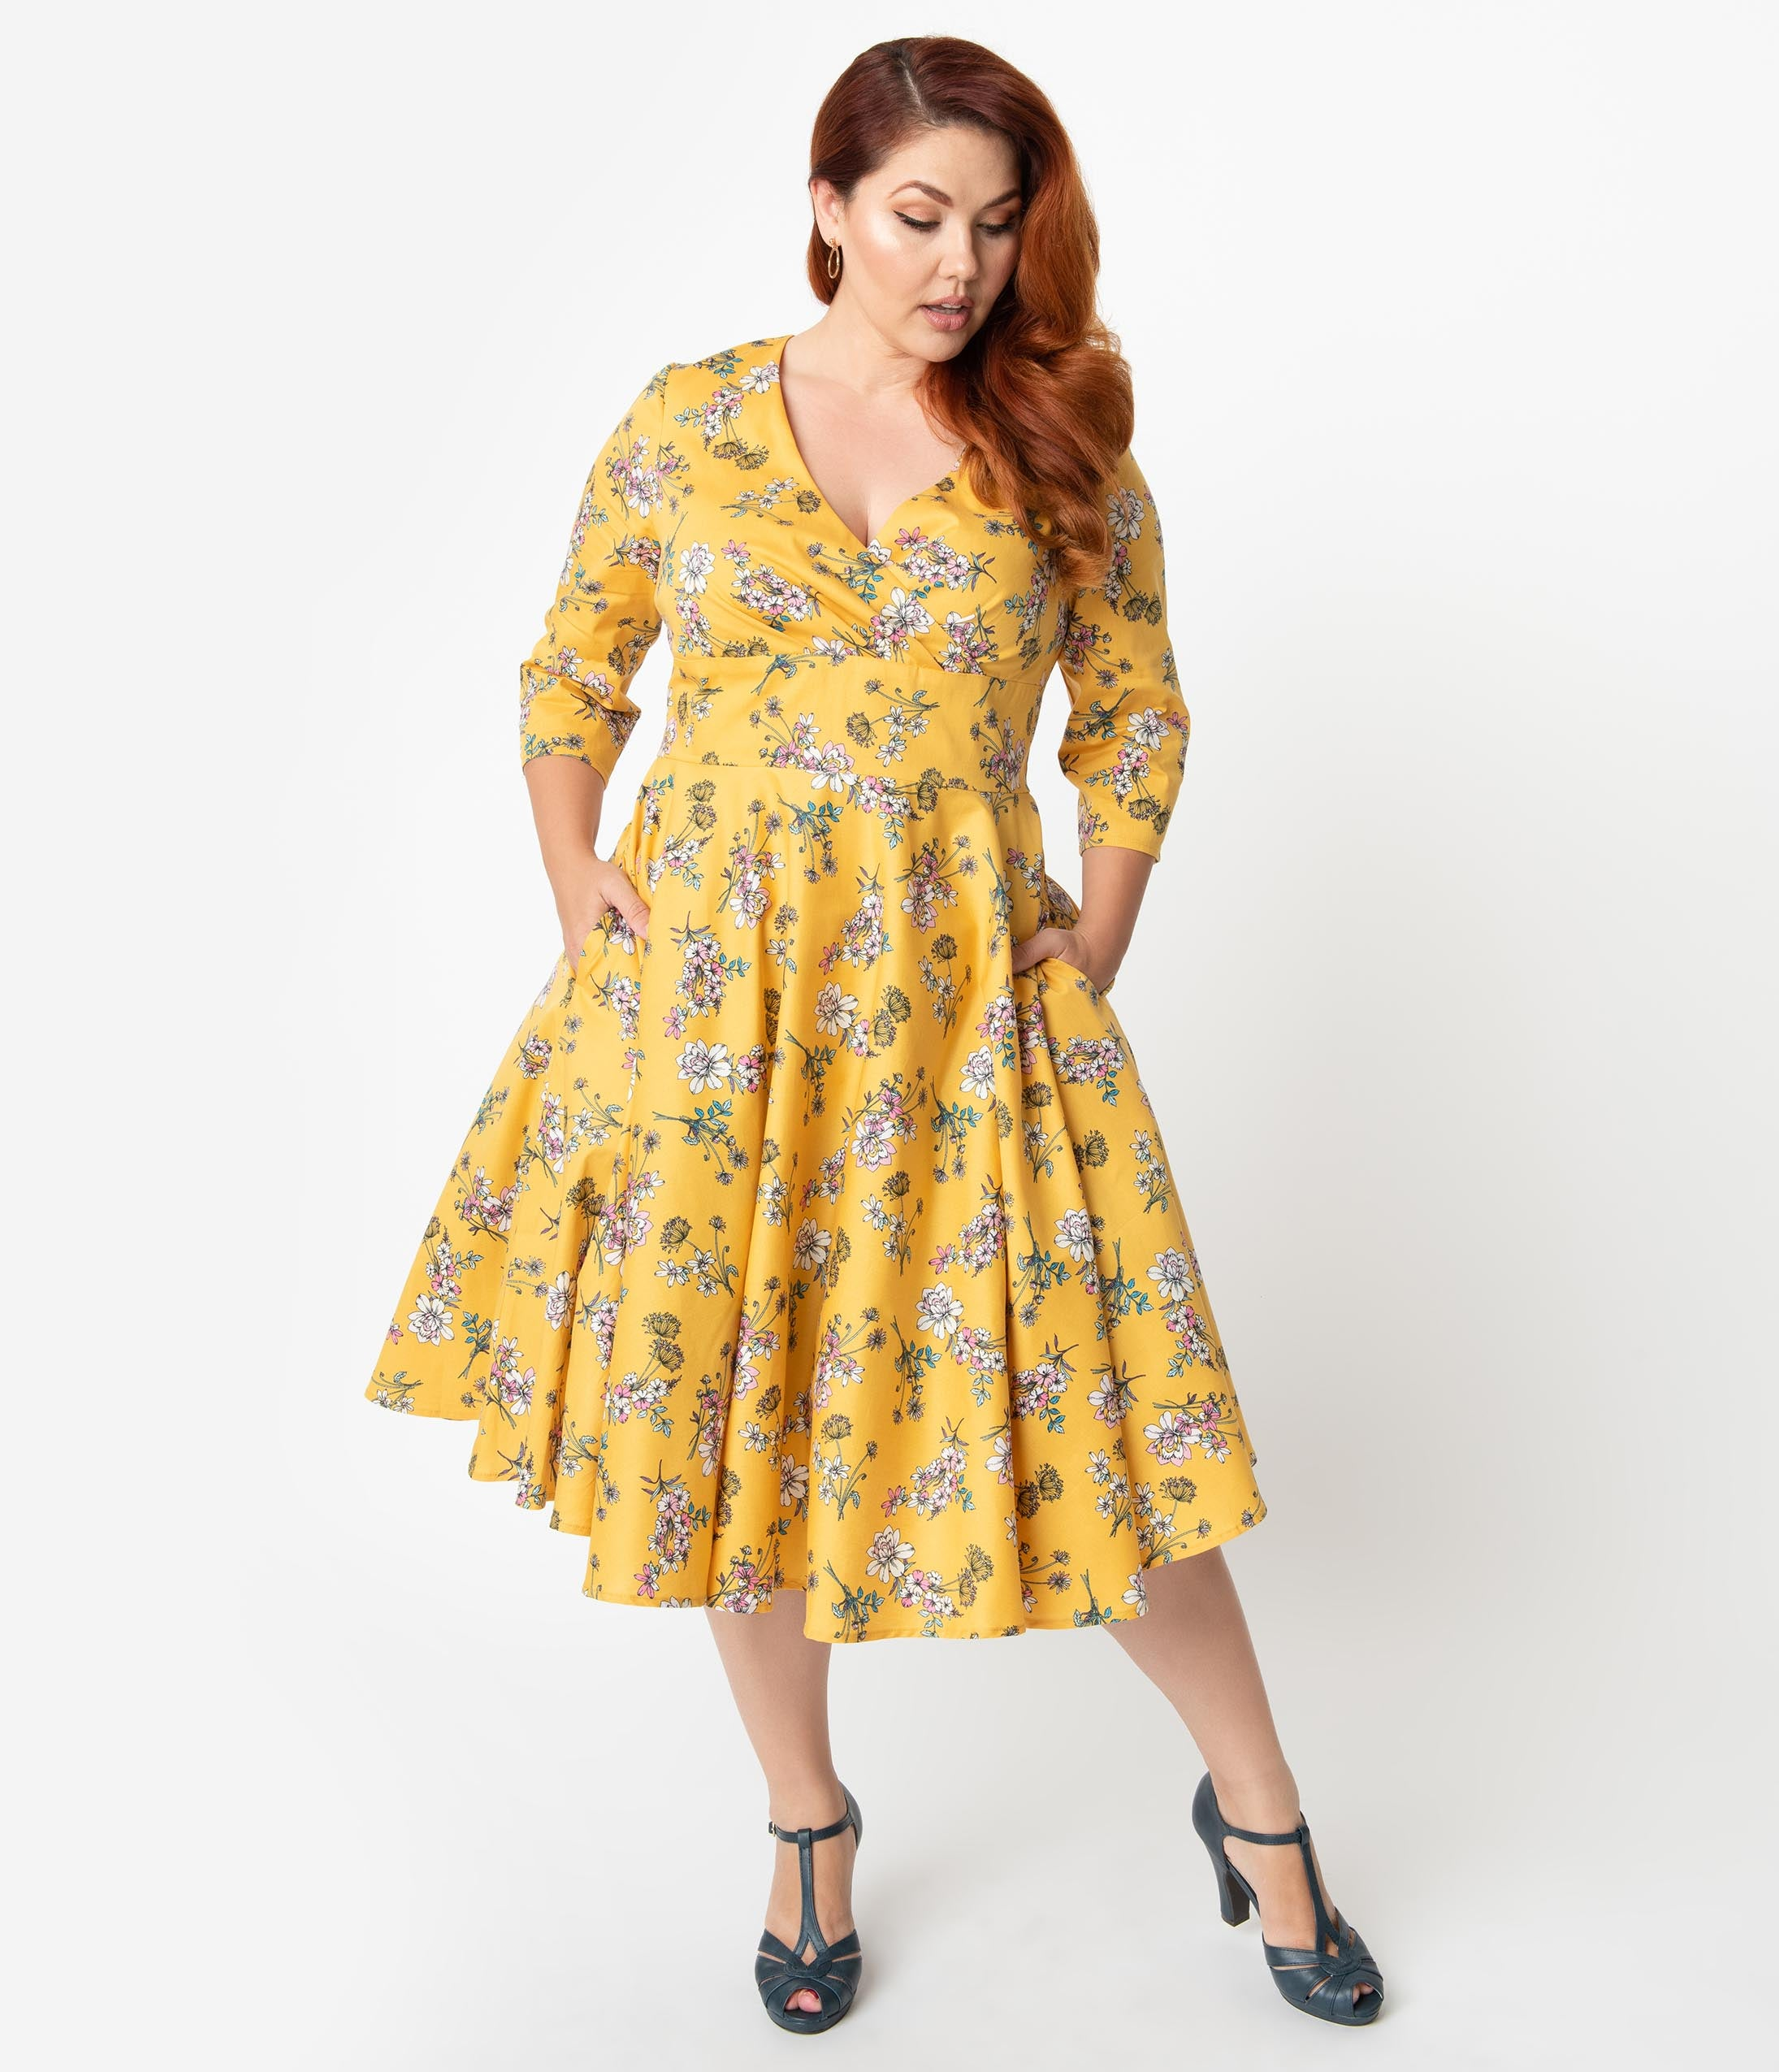 Plus Size Pin Up Dresses | Plus Size Rockabilly Dresses Hell Bunny Plus Size 1950S Style Mustard Yellow  Pink Floral Muriel Swing Dress $88.00 AT vintagedancer.com